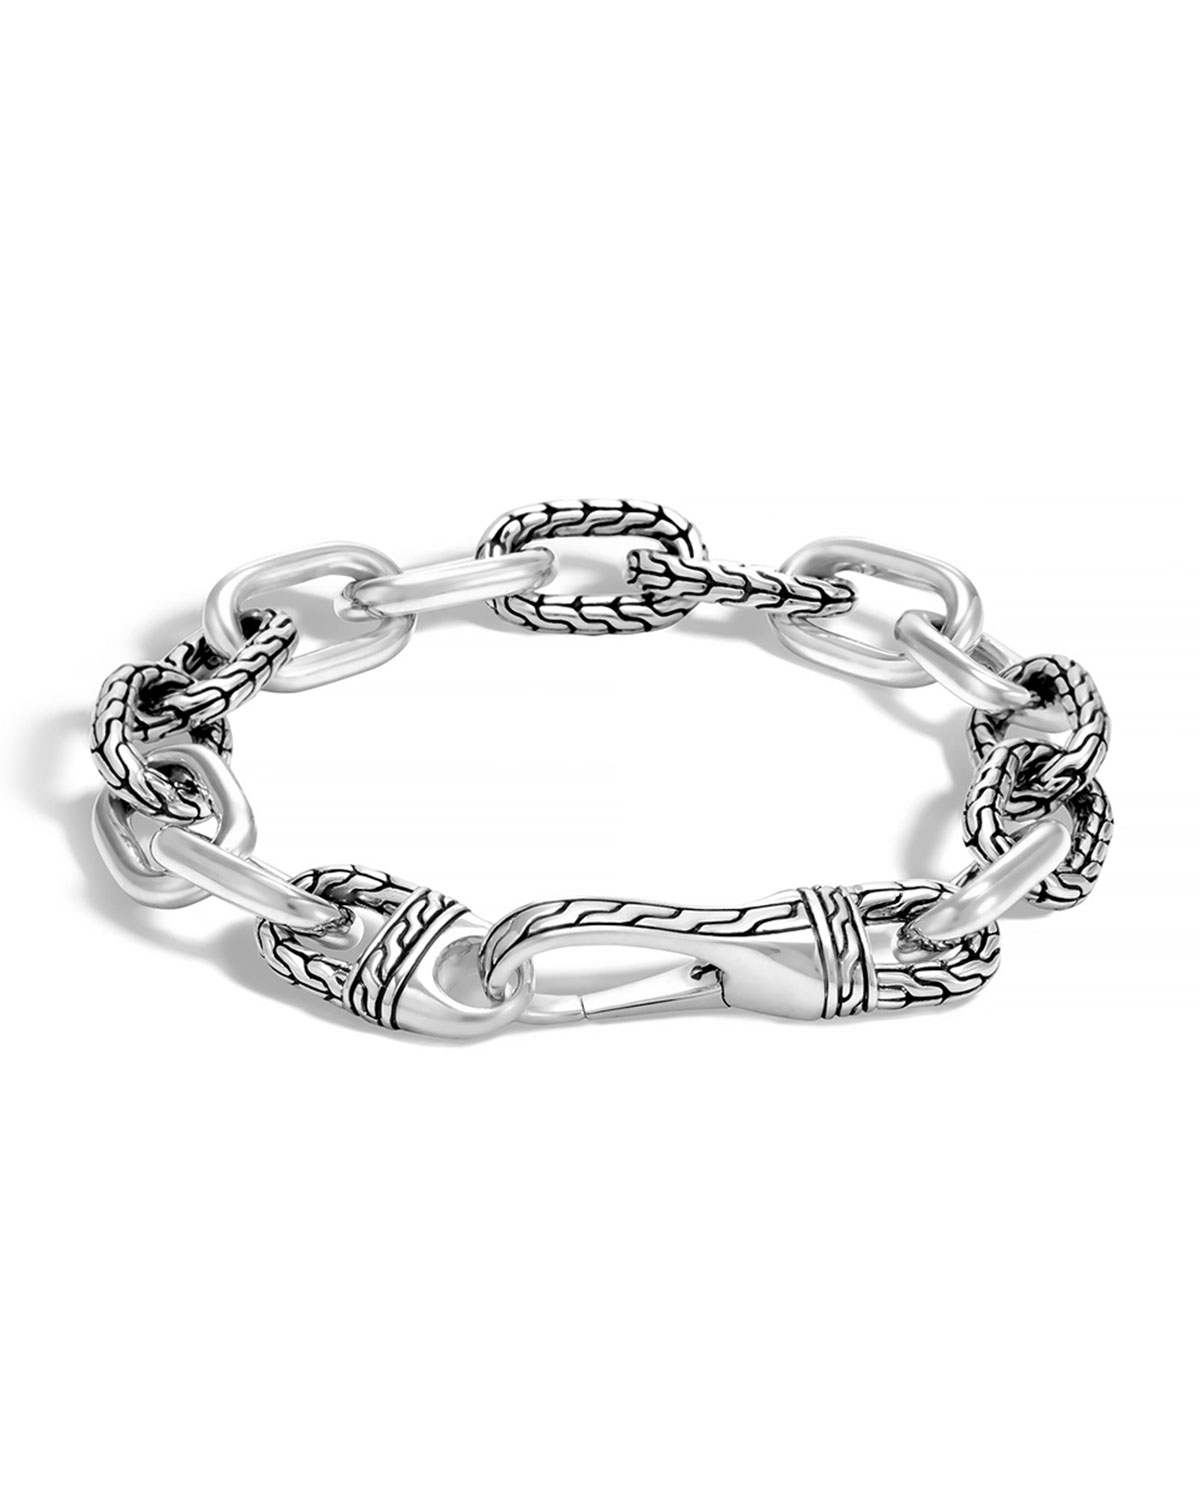 John hardy men 39 s classic chain link bracelet in metallic for John hardy jewelry factory bali